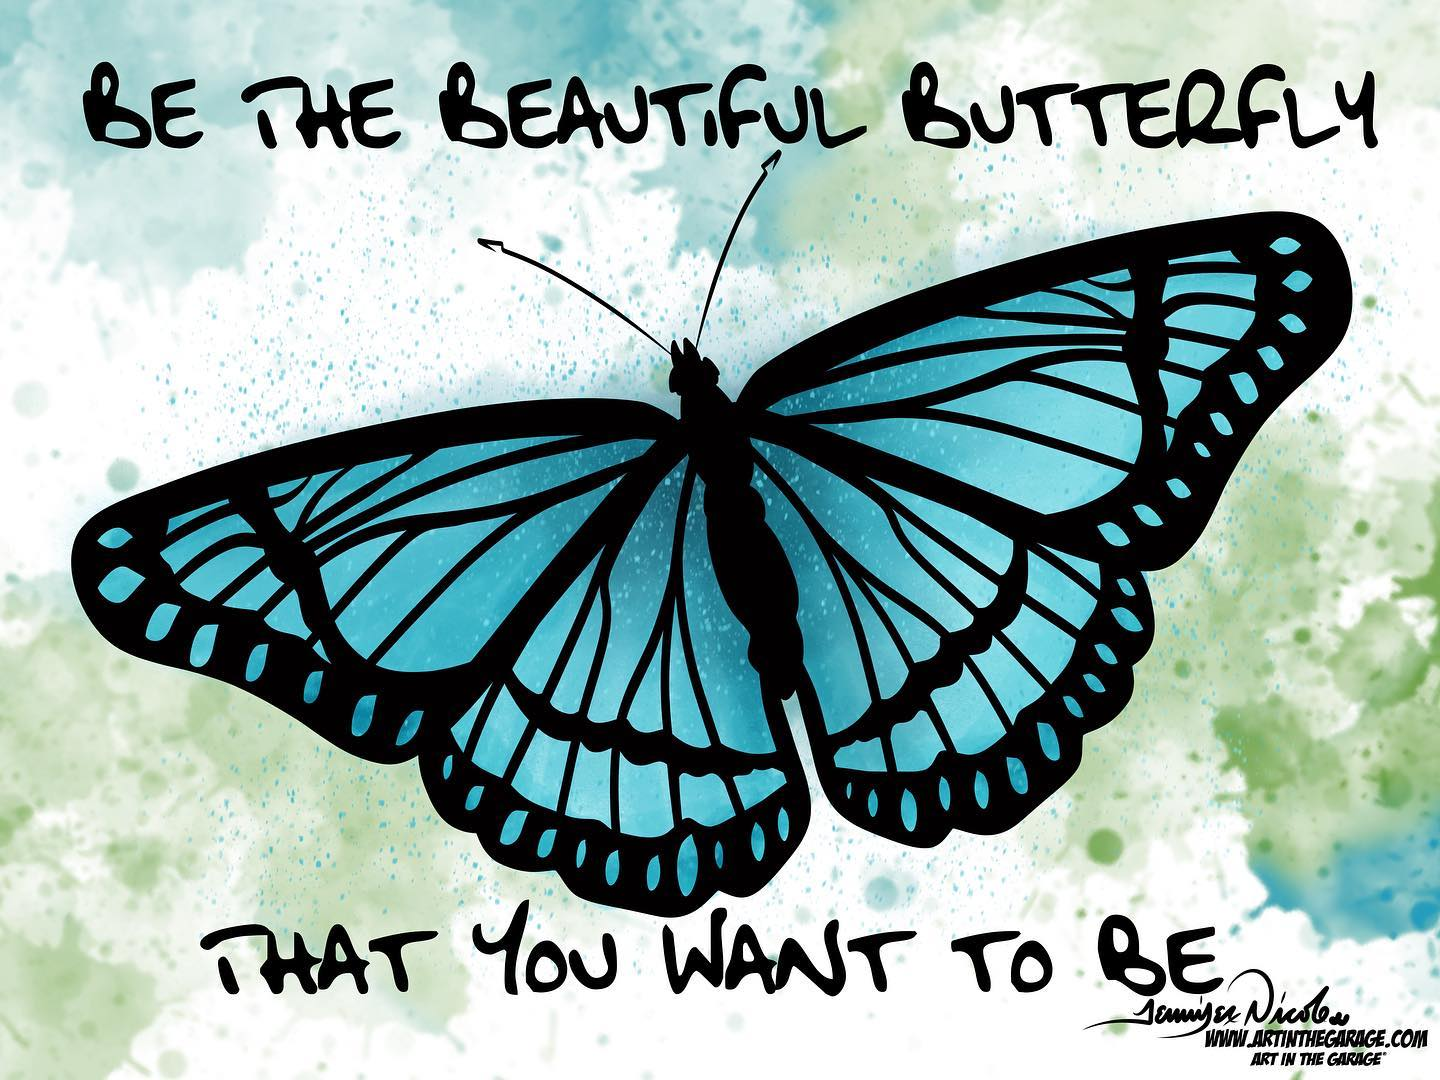 11-24-20 Be That Beautiful Butterfly Tha